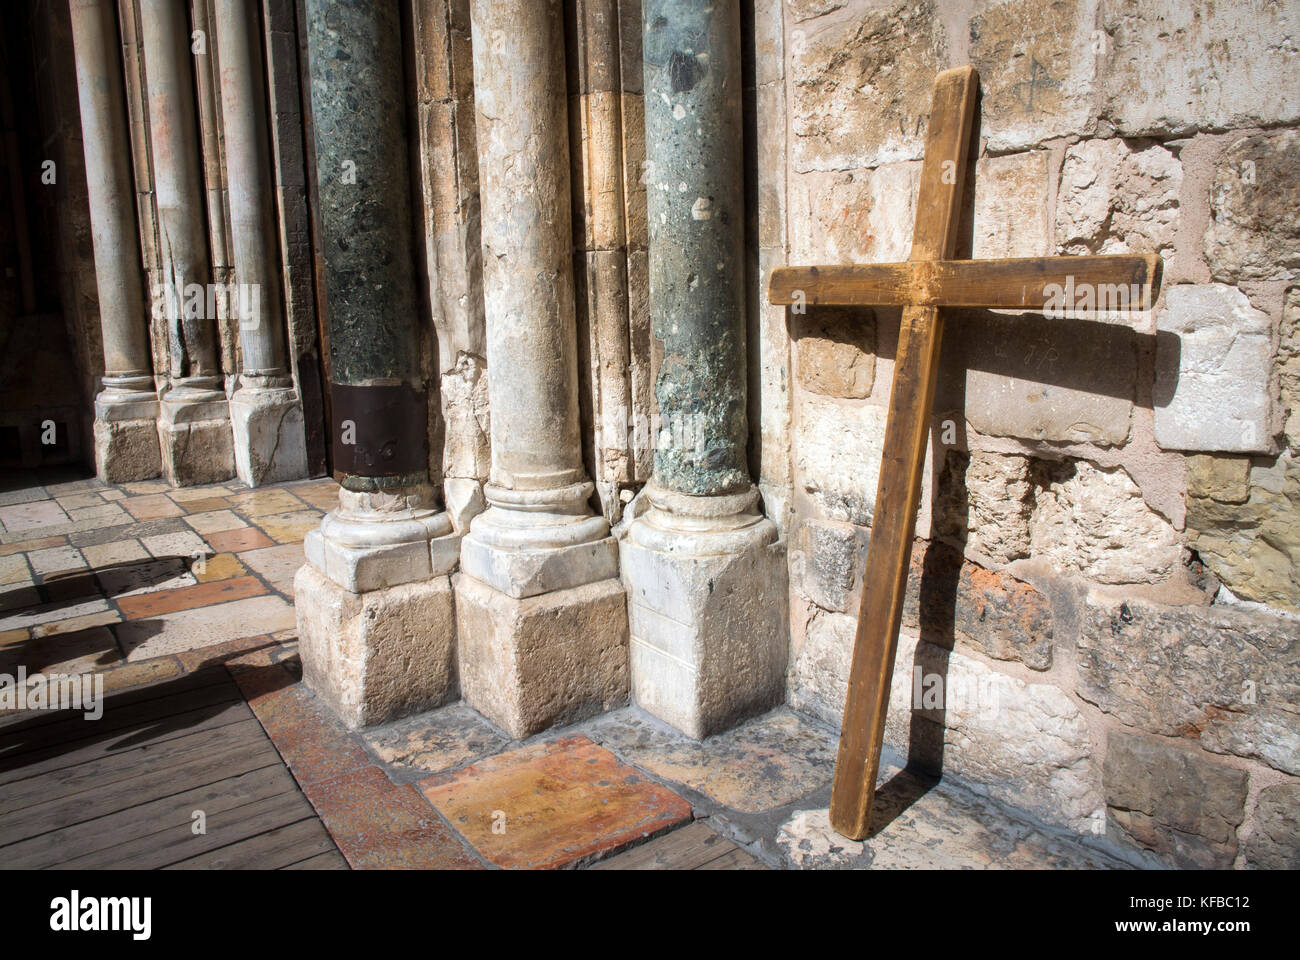 A cross placed outside The Church of the Holy Sepulchre in the Old City, Jerusalem. - Stock Image